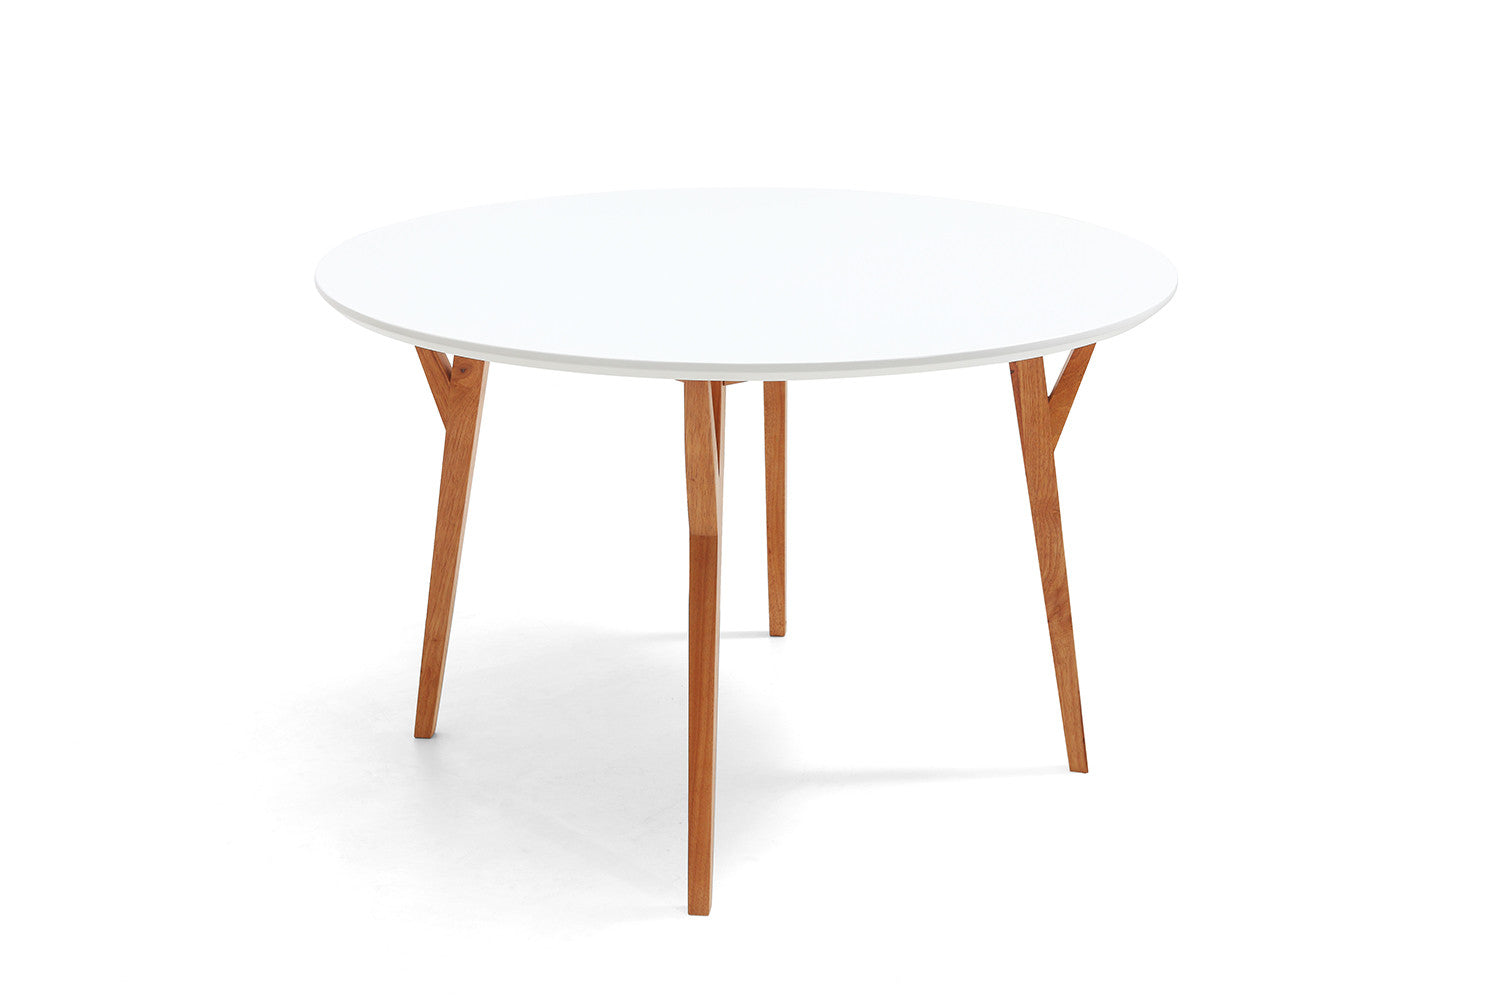 Table de salle manger ronde design scandinave moesa for Table ronde salle a manger extensible